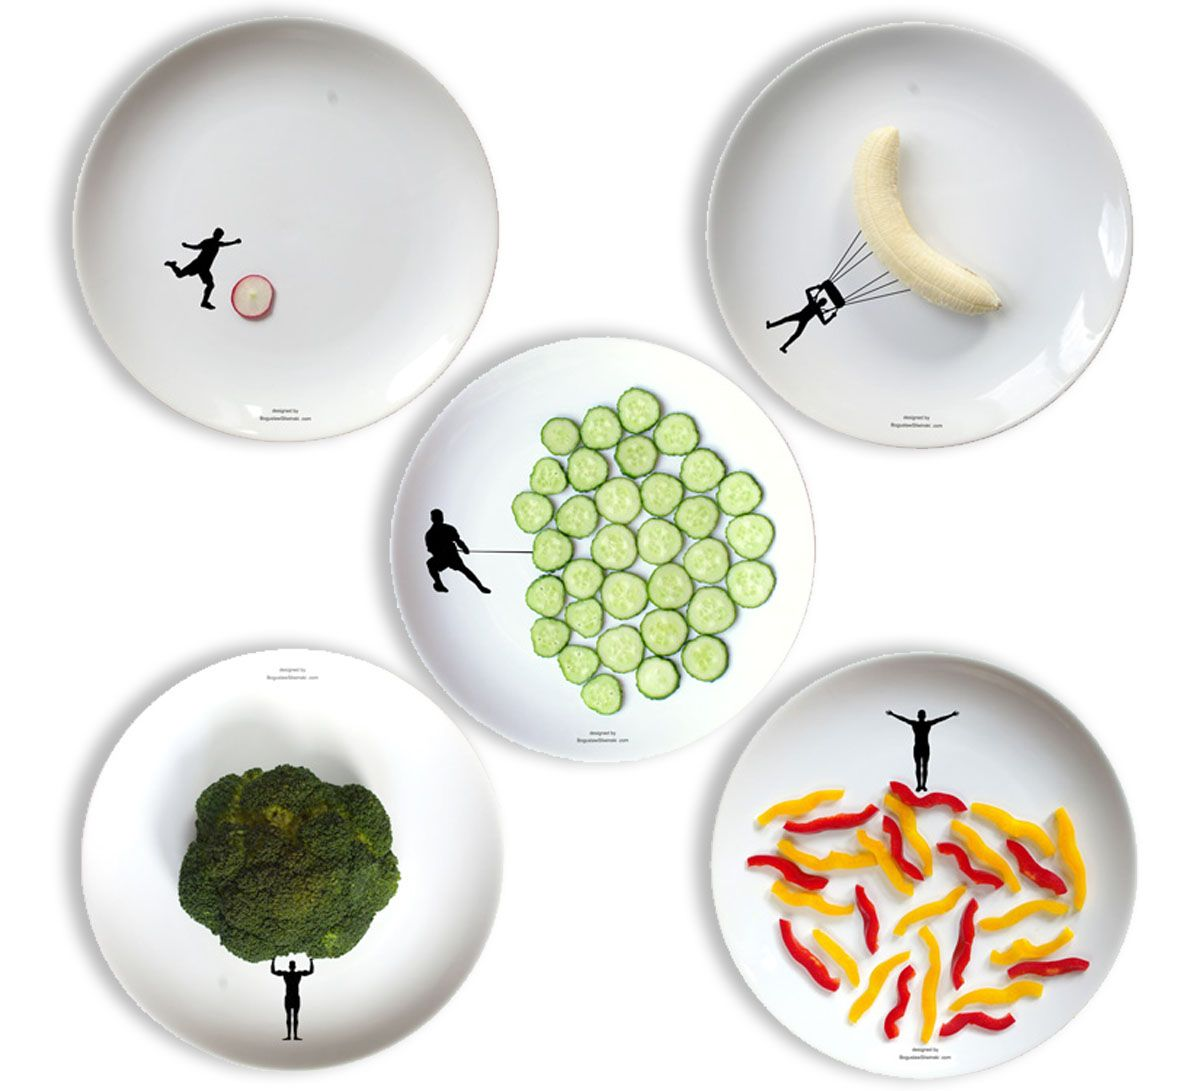 interactive dinner plates by boguslaw sliwi?ski  sc 1 st  Pinterest & interactive dinner plates by boguslaw sliwi?ski | wish | Pinterest